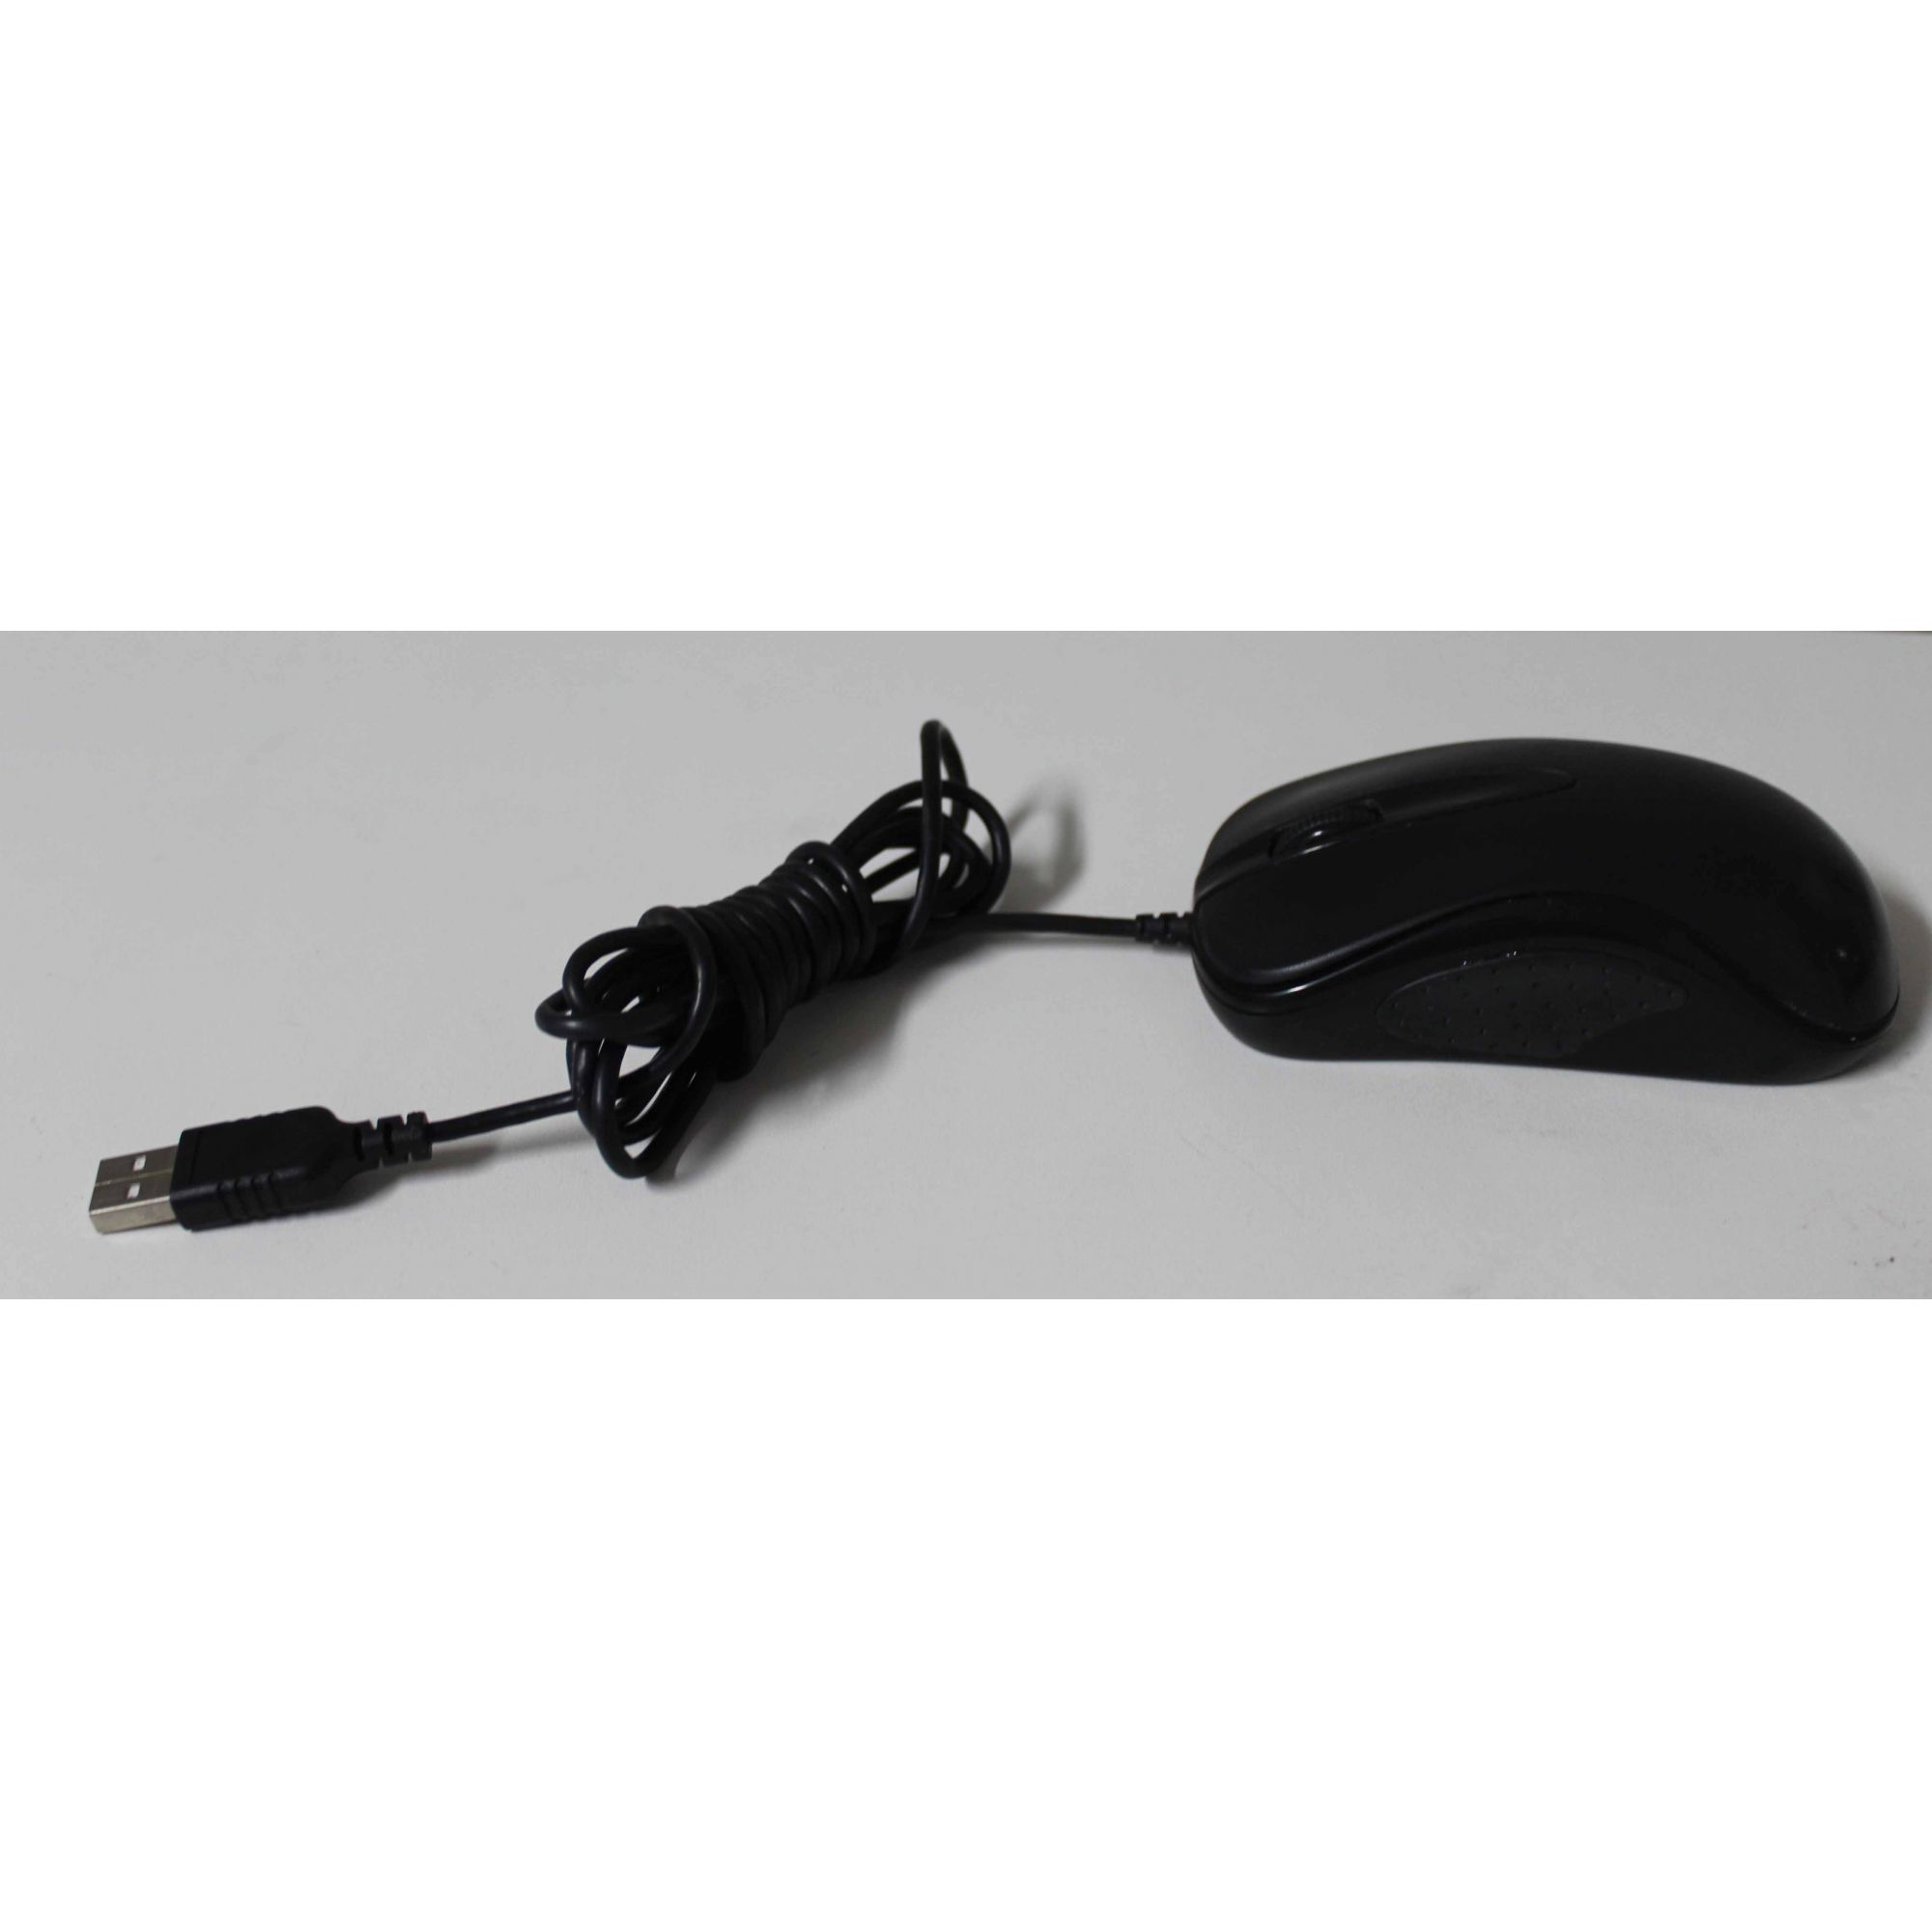 Mouse Mtek USB MS209U - Preto